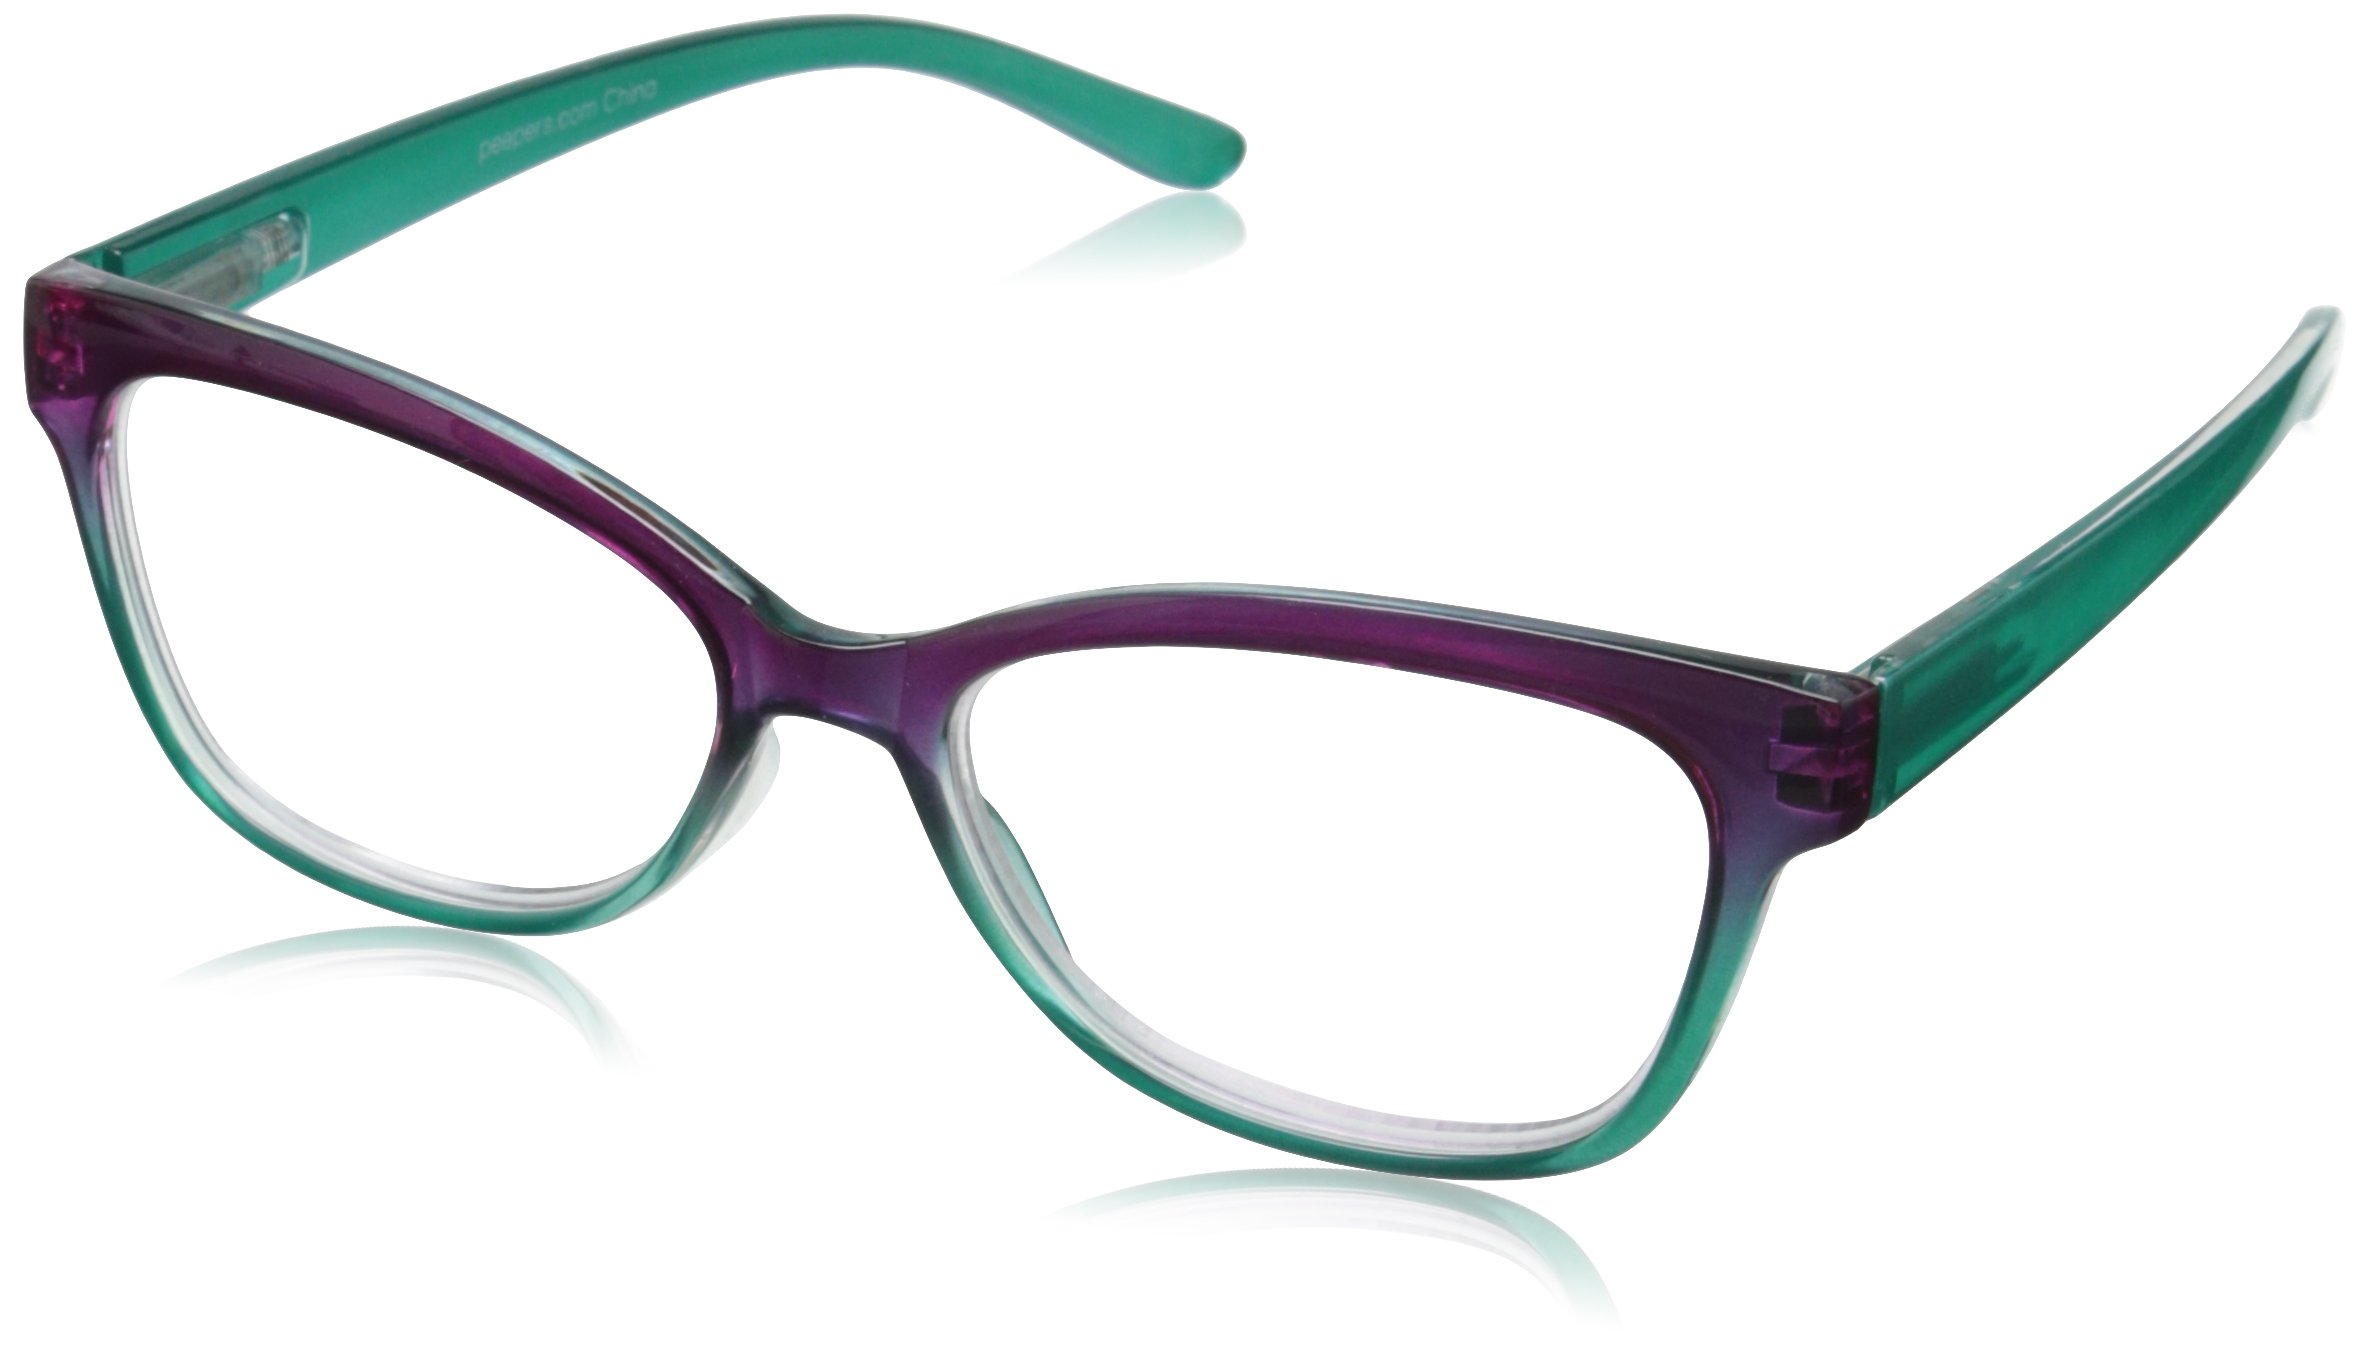 Peepers Women's Transcendent Oval Reading Glasses, Purple & Teal, 2.5